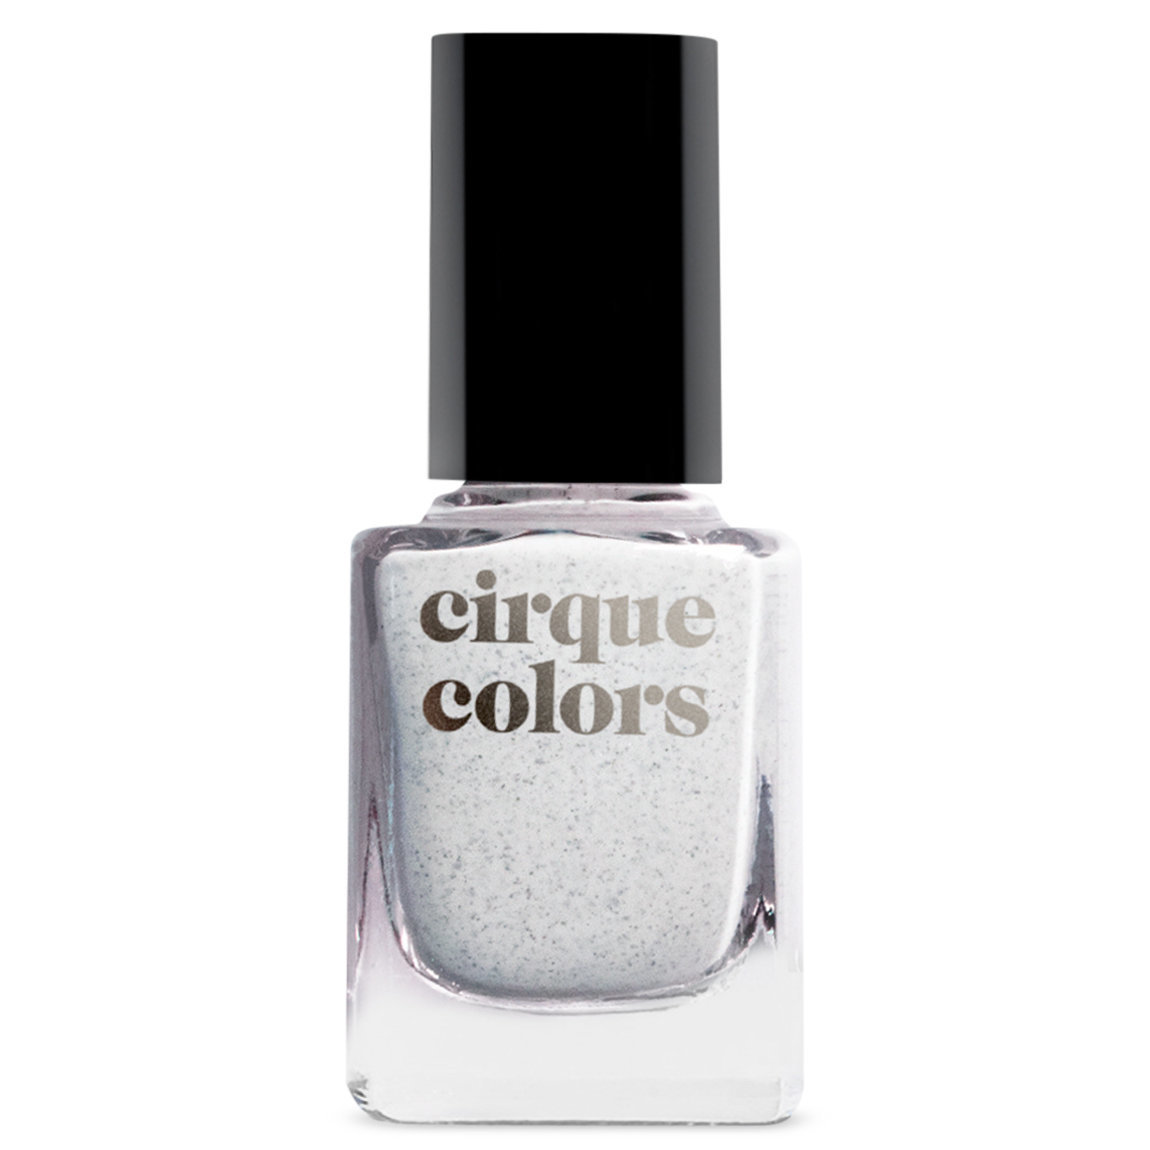 Cirque Colors Speckled Nail Polish Hatch alternative view 1.